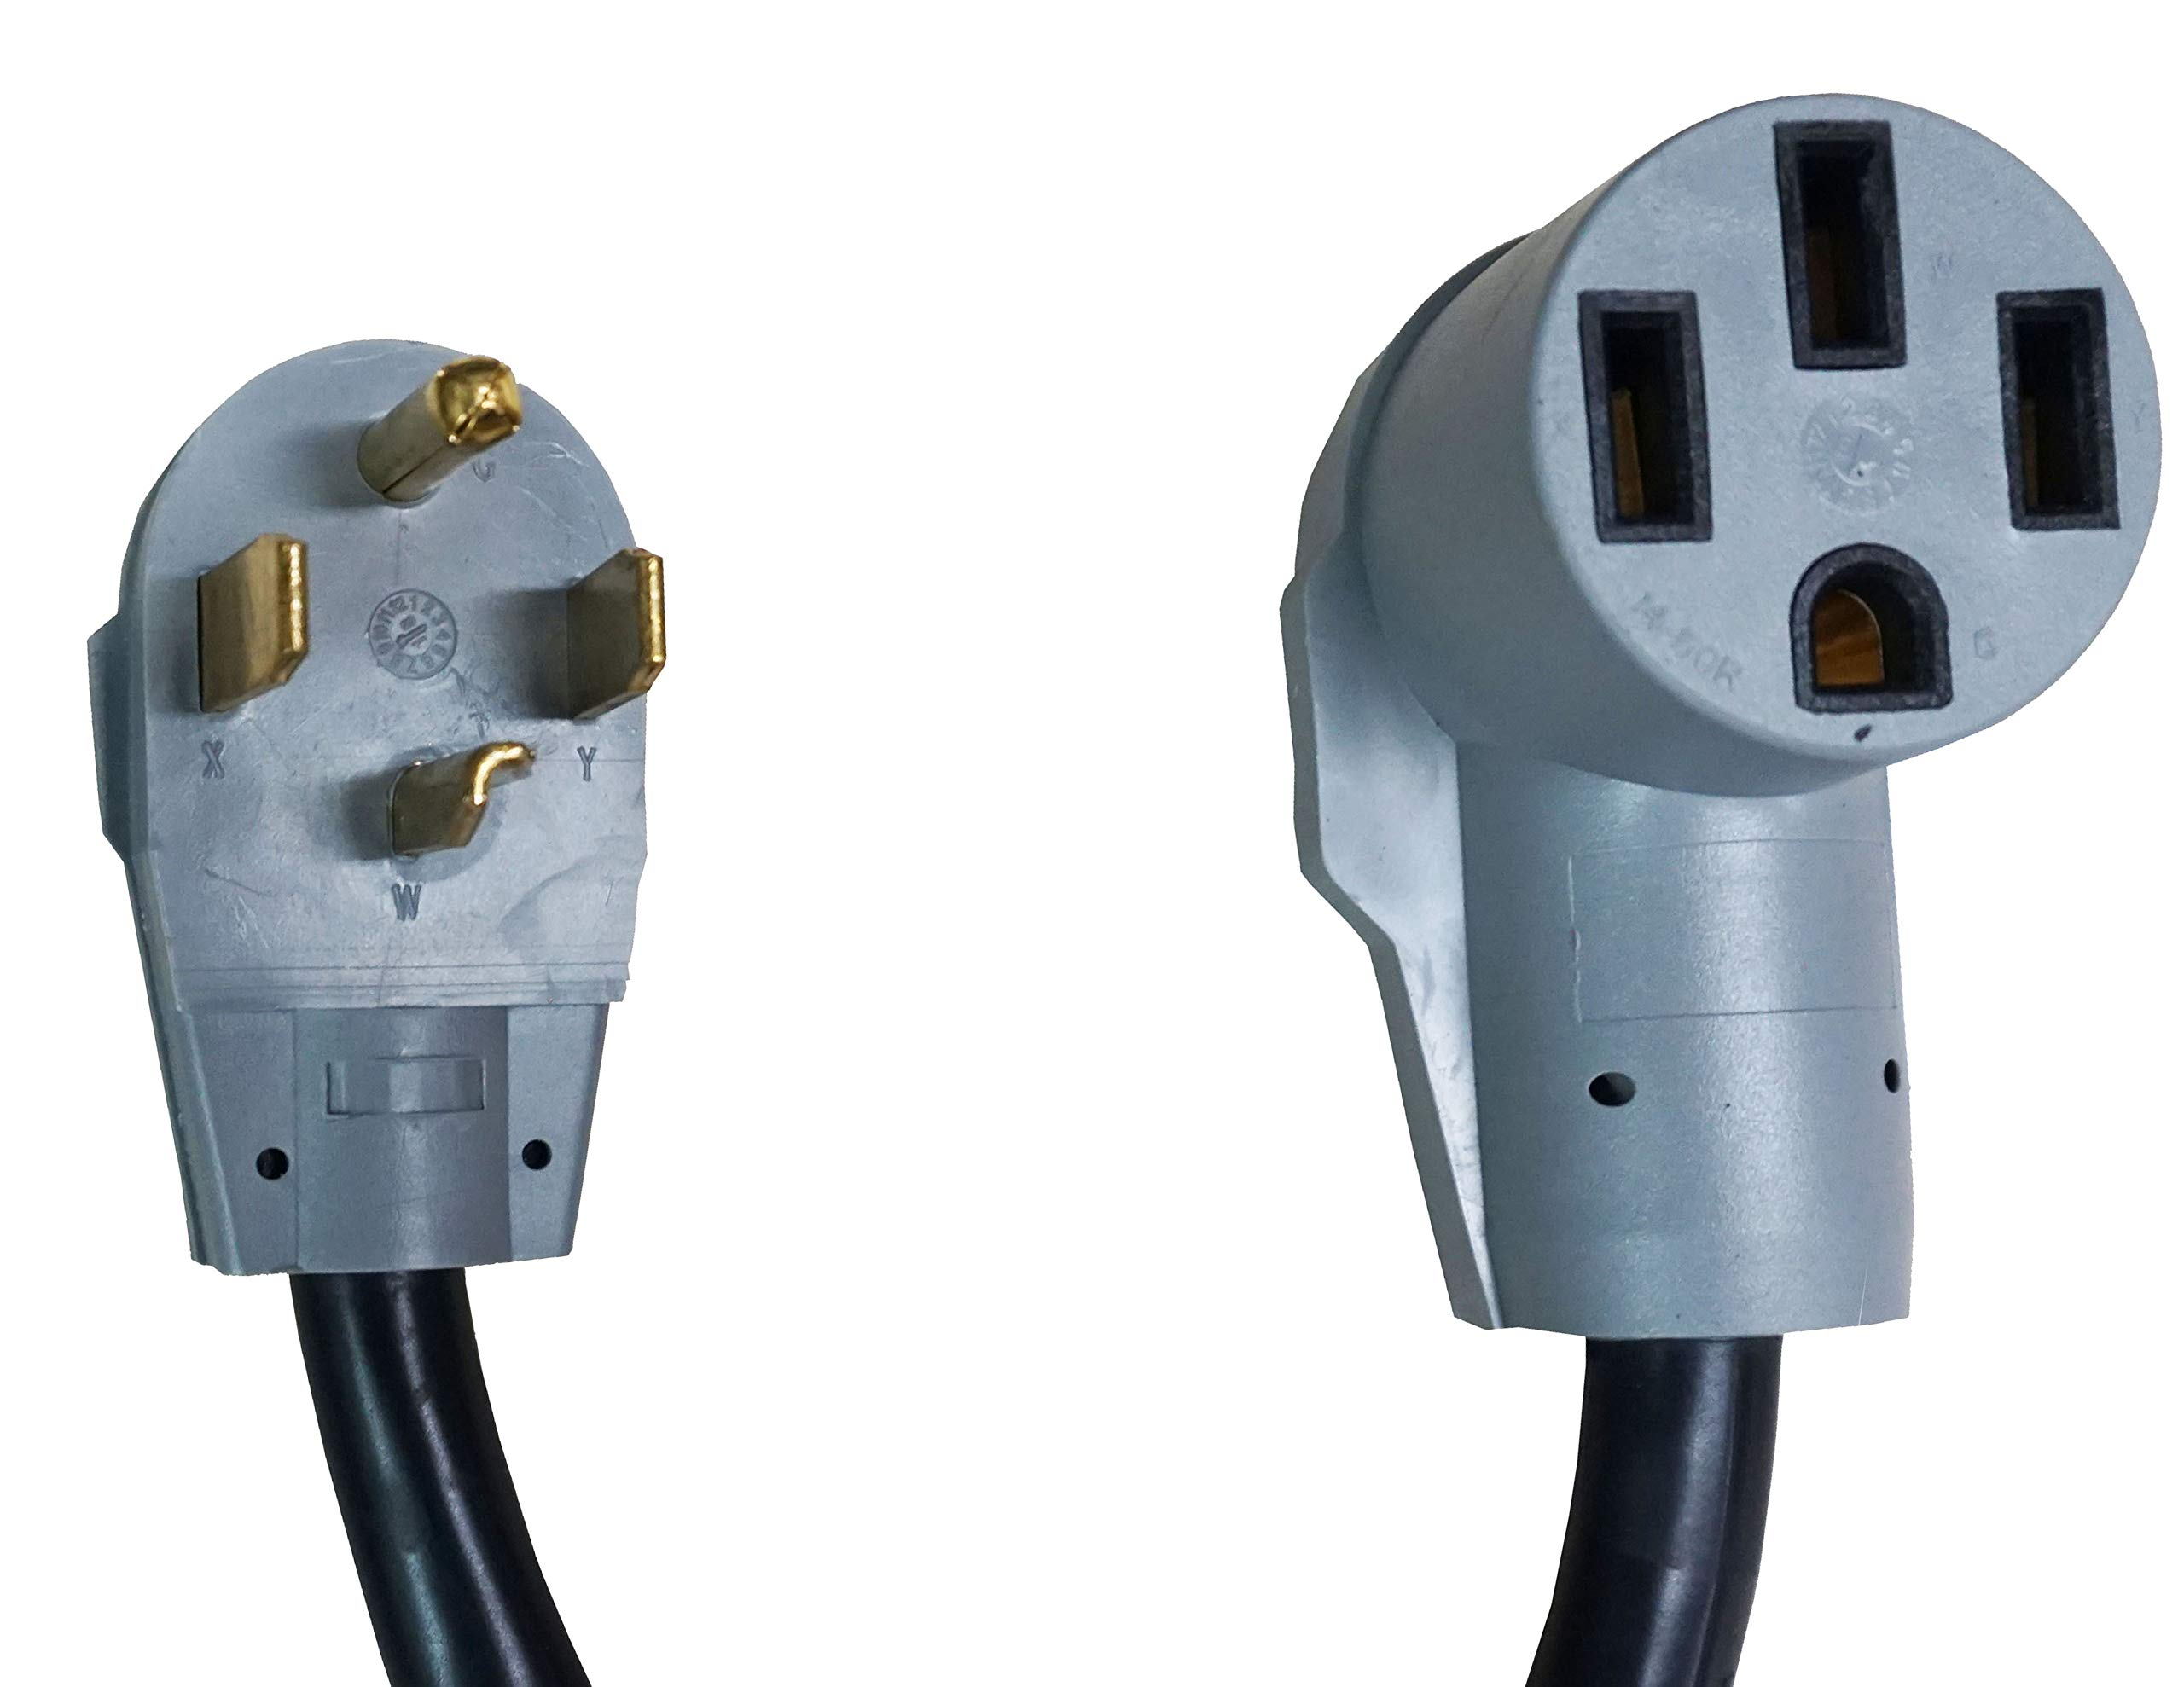 Gomadic Electric Vehicle NEMA 14-50 to NEMA 14-30P Outlet Adapter Cable - Perfect for Tesla and EV Cars